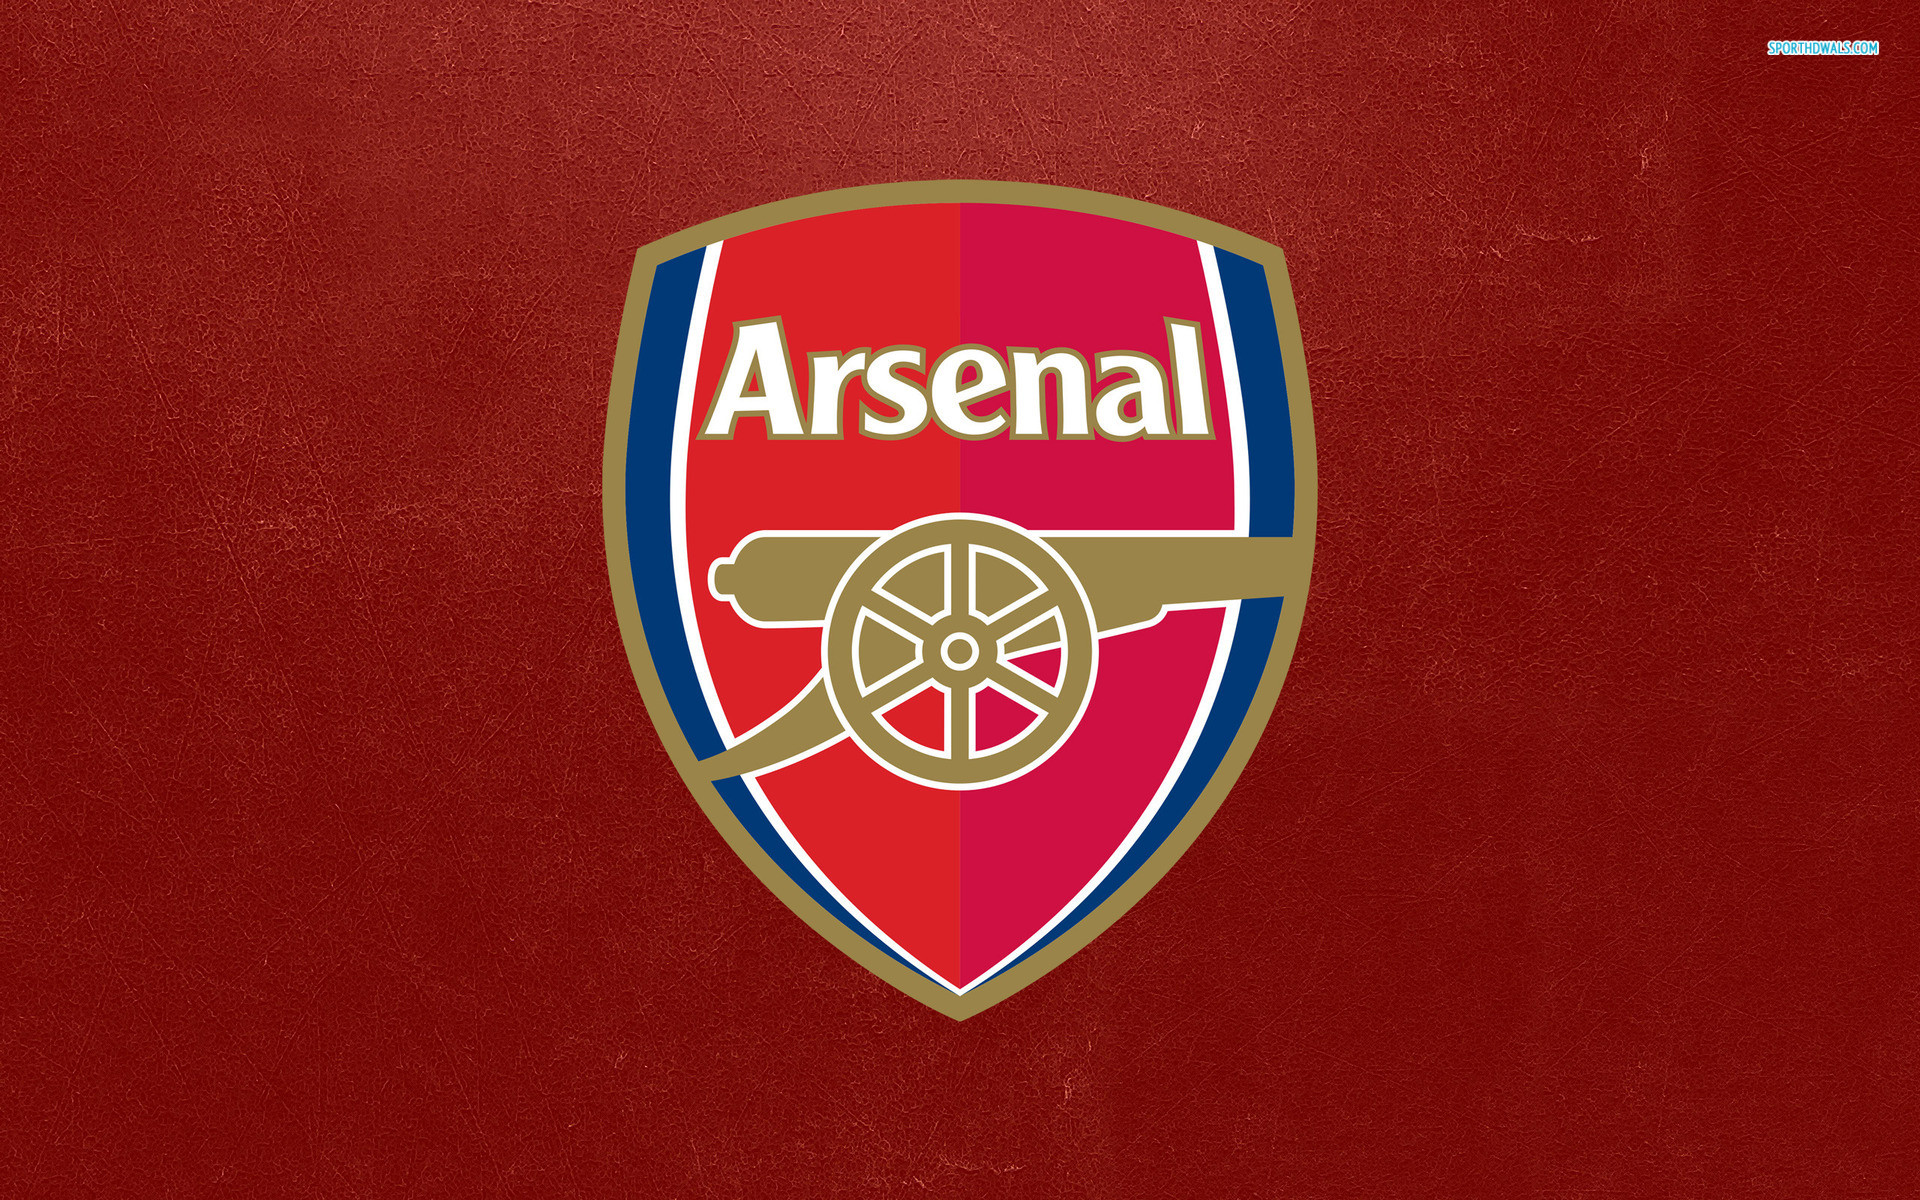 Arsenal Fc Logo: Arsenal Logo Wallpaper 2018 (78+ Images